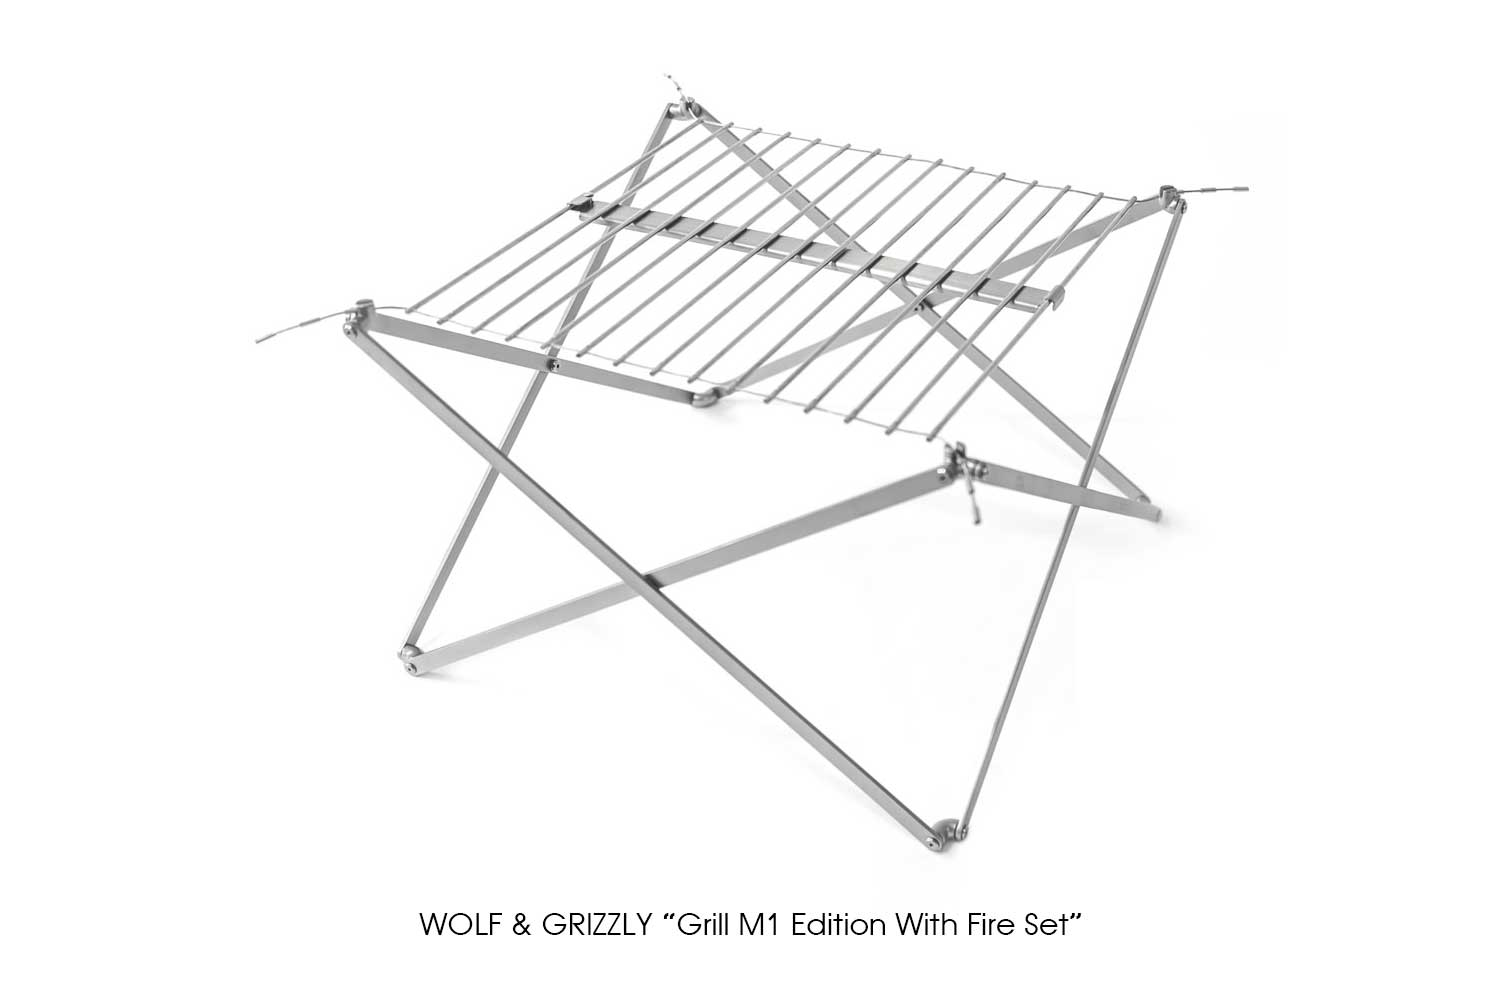 """WOLF & GRIZZLY """"Grill M1 Edition With Fire Set"""""""